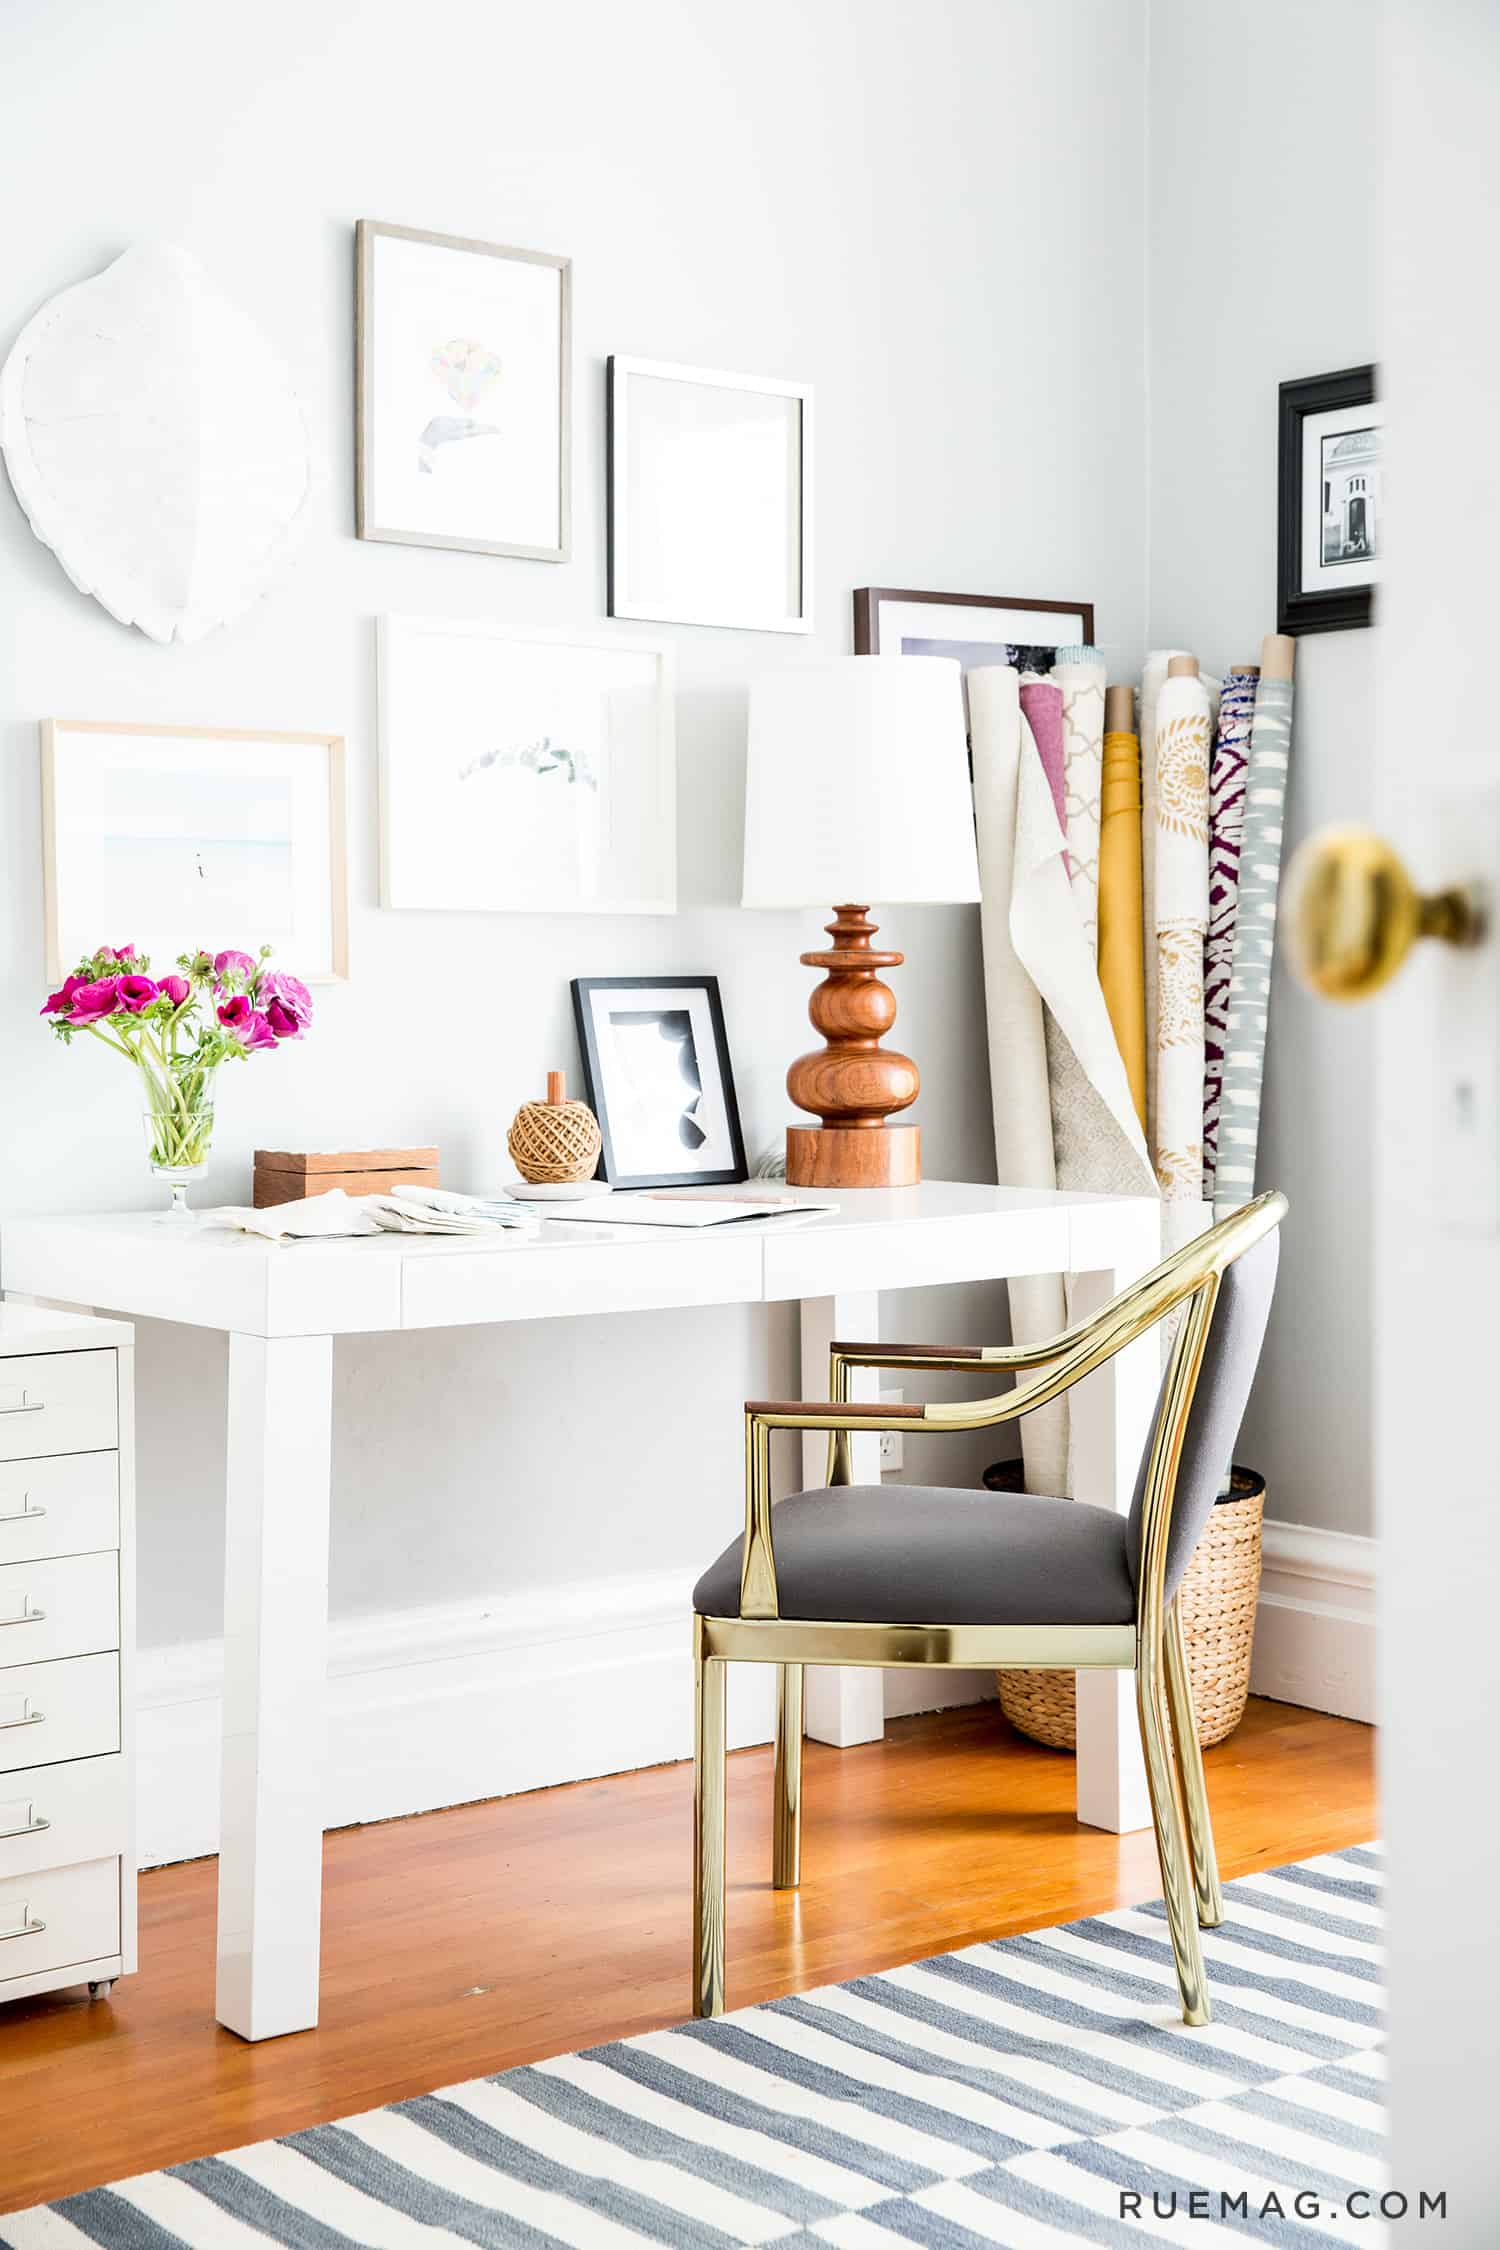 Small Home Office Ideas That Will Make You Want to Work Overtime #cozyofficenook #smallhomeofficeinspiration #officedesk #homeofficestyle